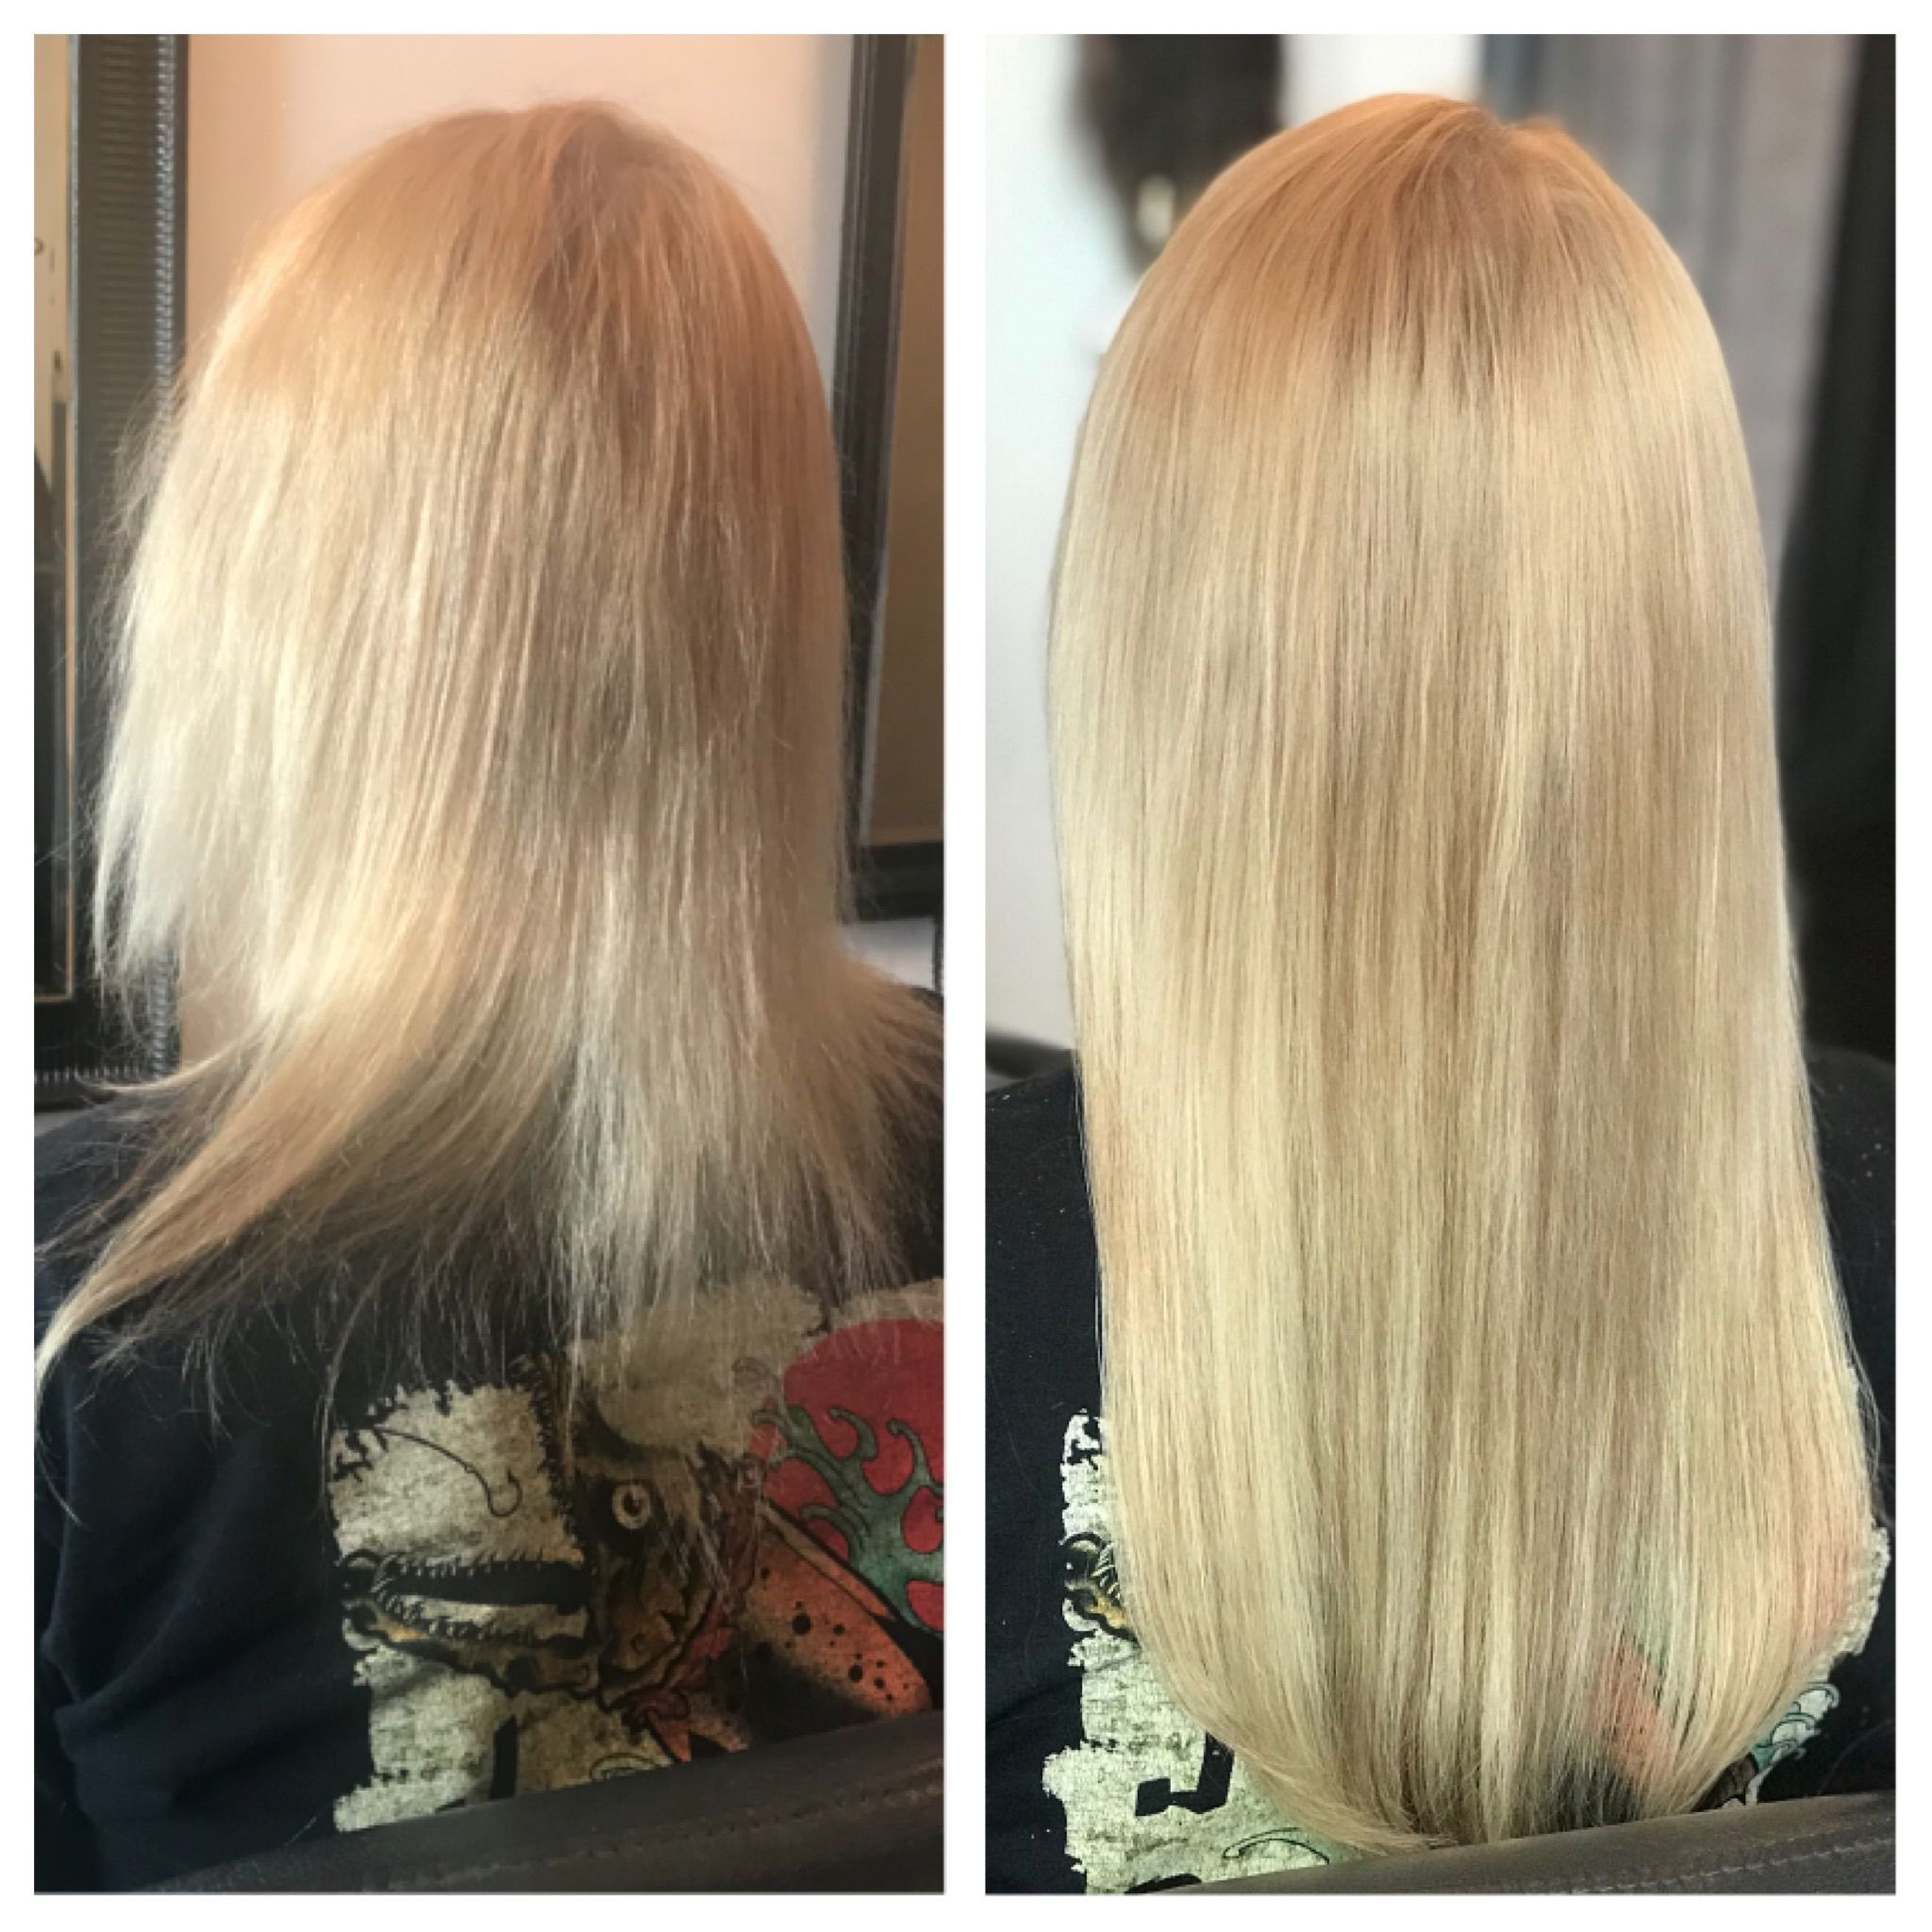 Is Your Hair Broken Damaged From Bleaching Do You Need Your Hair